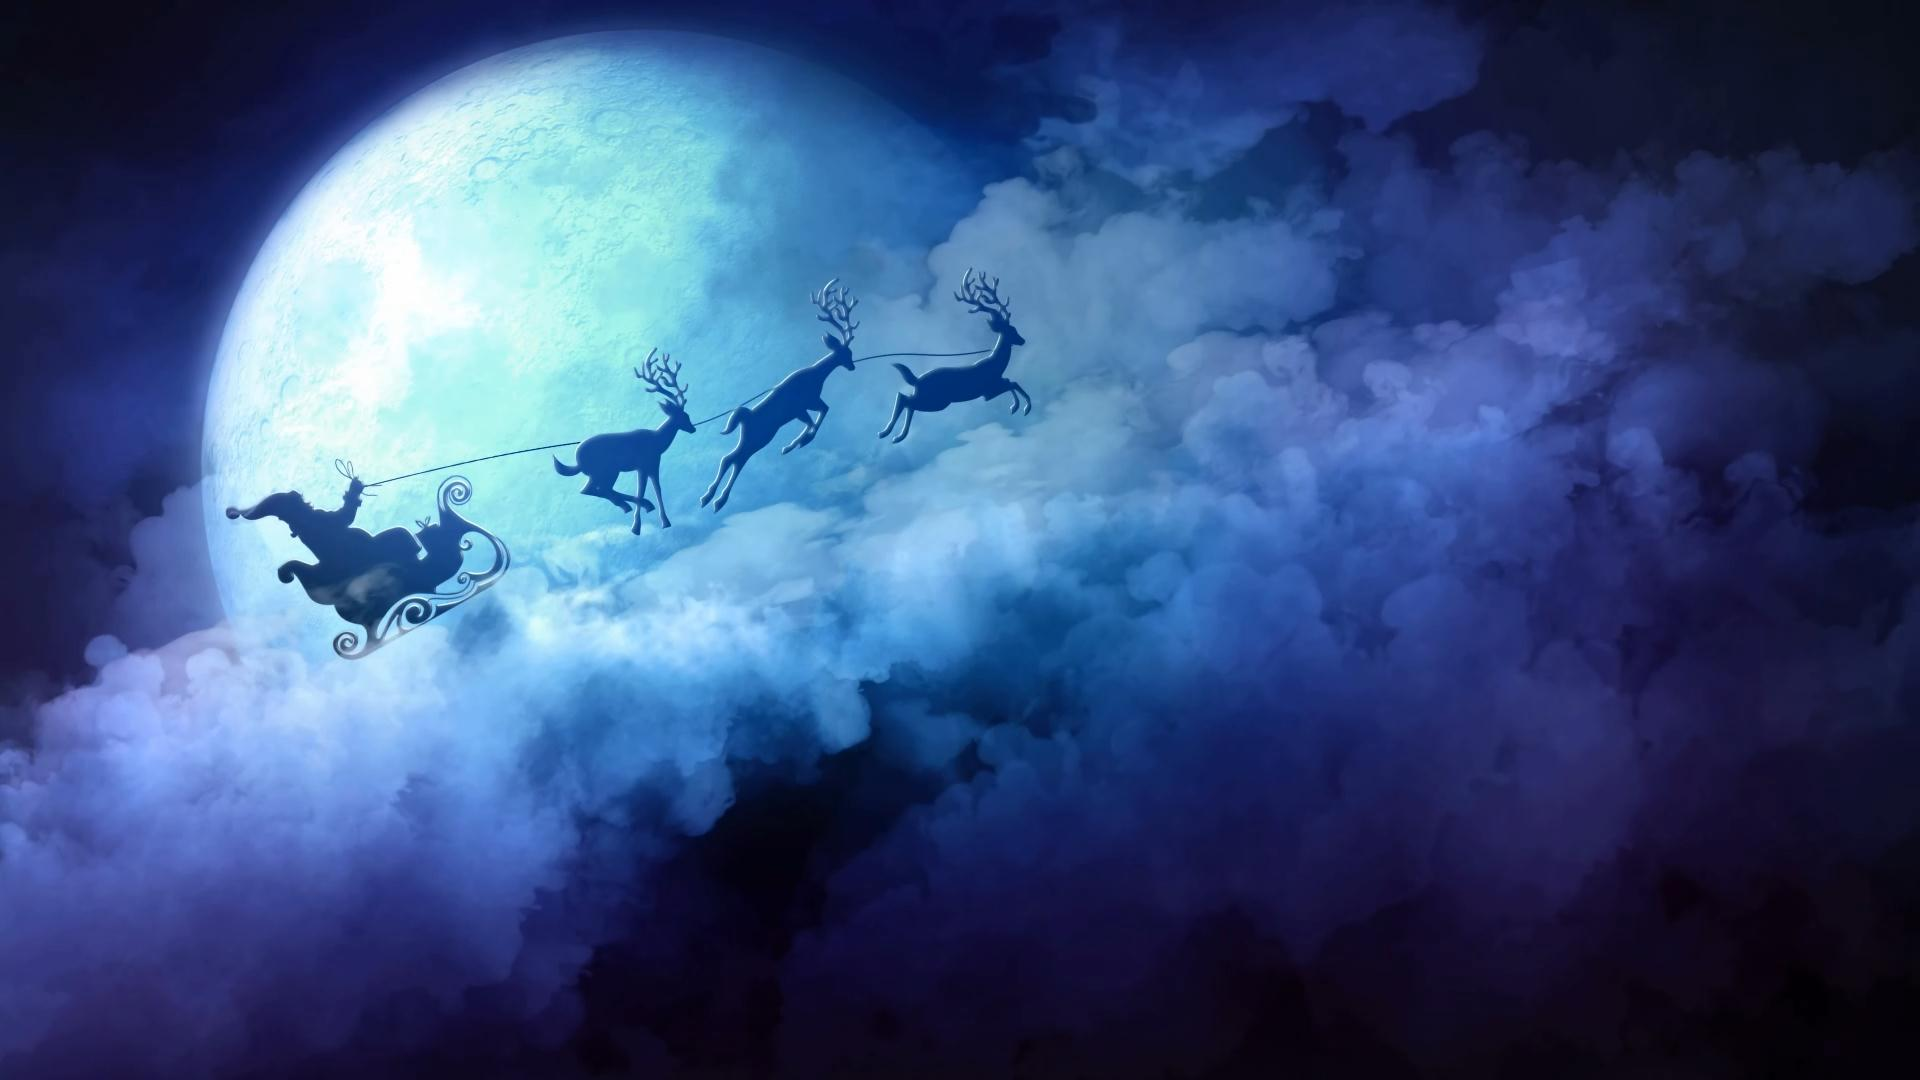 Most beautiful christmas wallpaper full hd pictures for Most beautiful christmas photos